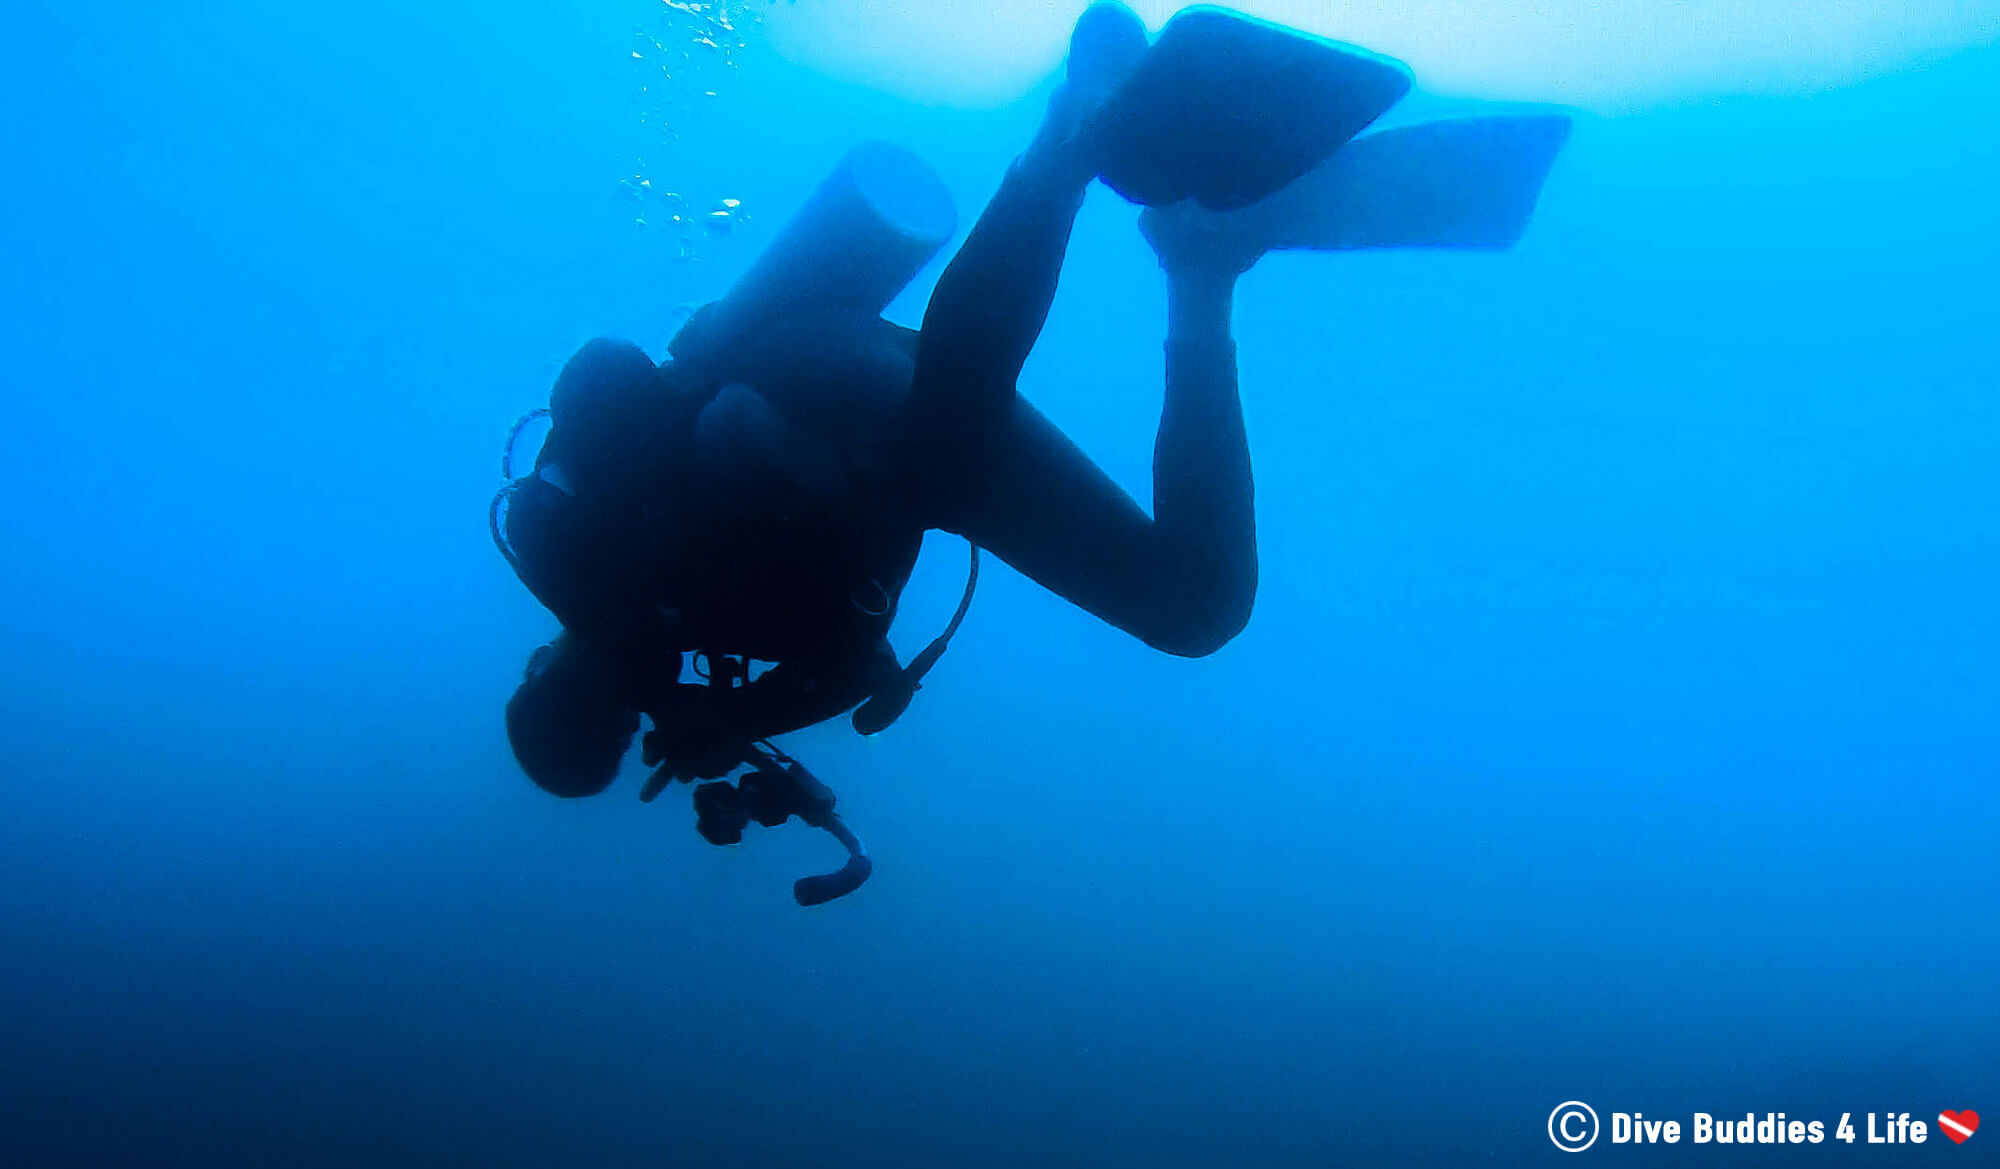 Scuba Diver Joey Floating Upside Down At His Safety Stop In The Bat Islands, Costa Rica